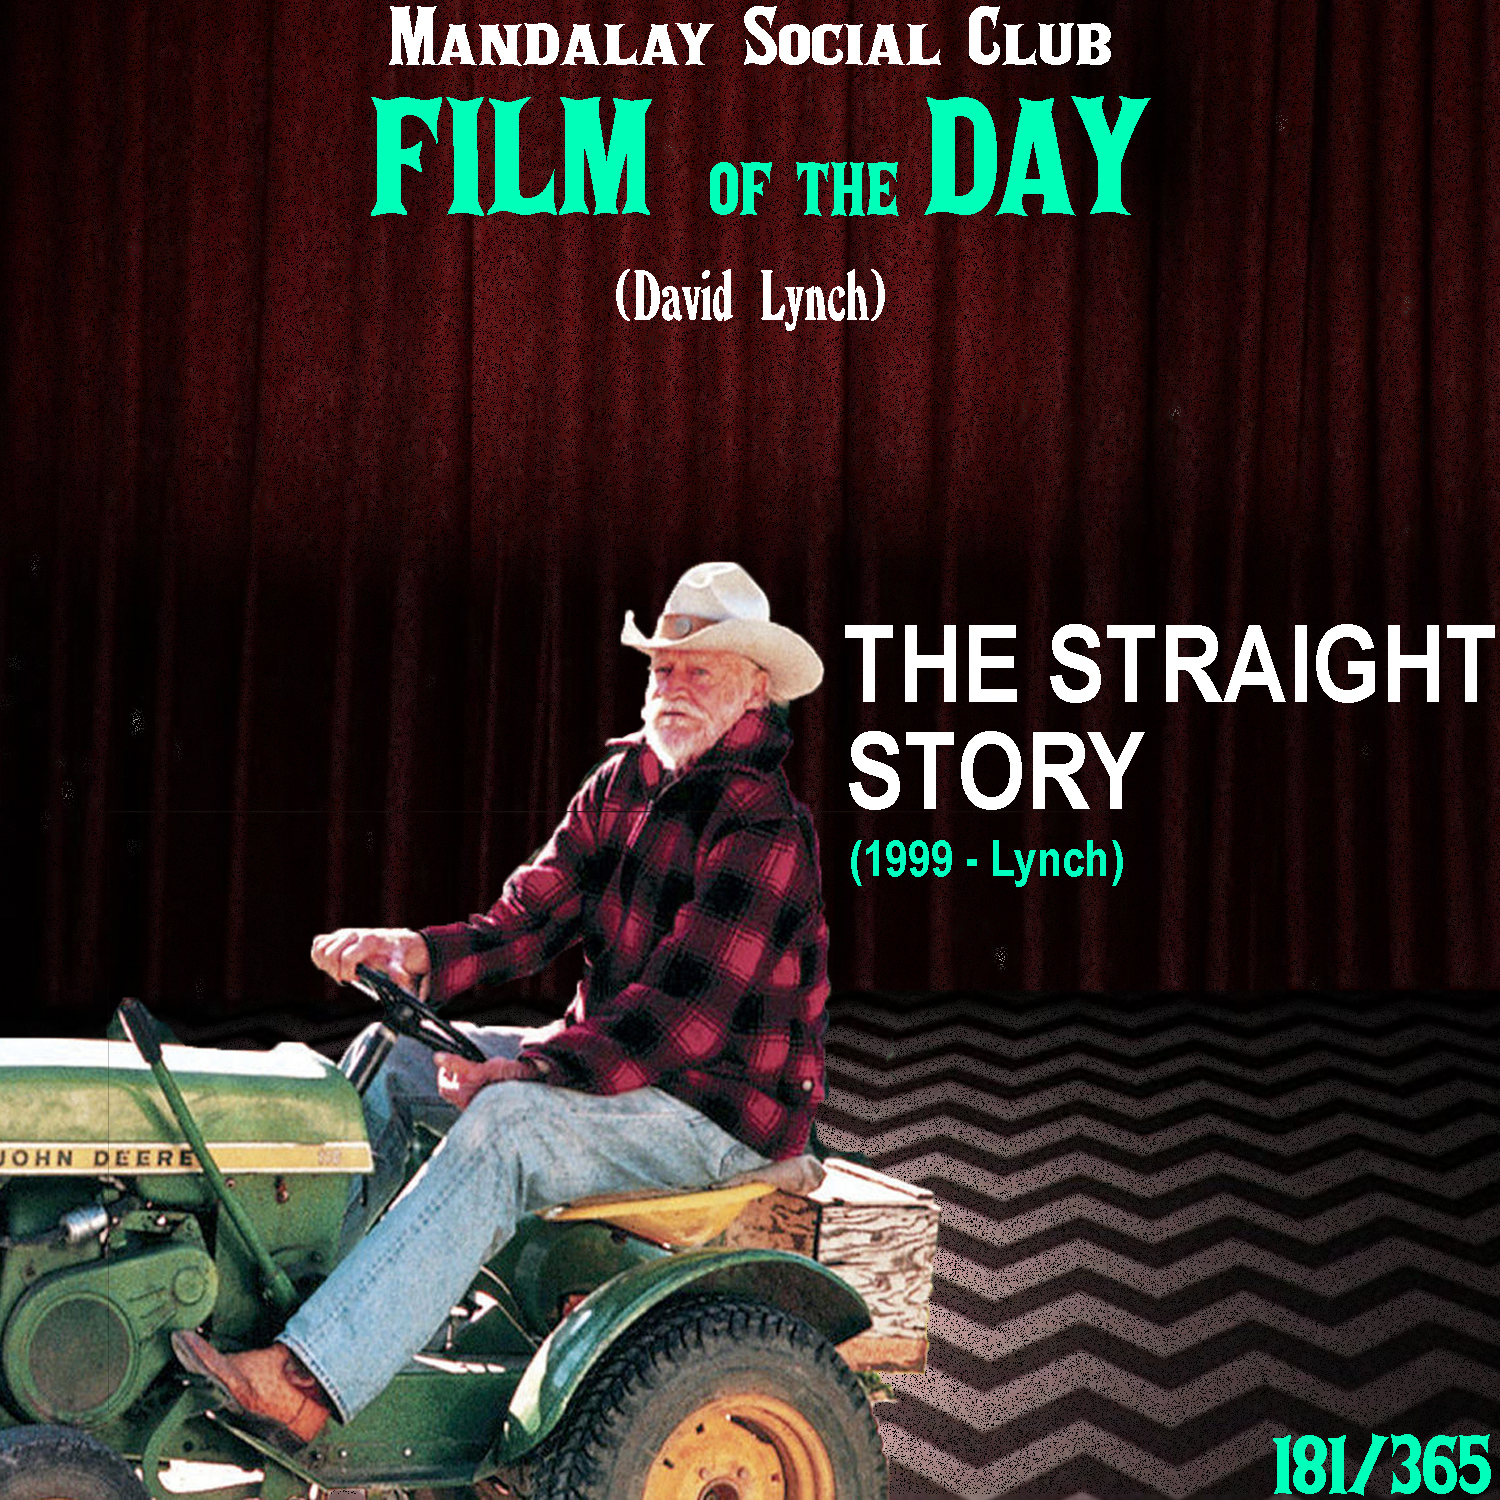 THE STRAIGHT STORY     (dir. David Lynch)   David Lynch's single most sympathetic film,  The Straight Story  comes completely out of left field when analyzing all the works from the great Americana Surrealist.   The Straight Story  recounts the true story of Alvin Straight, a 73 year old man from Iowa, whose brother fell victim to a stroke in Wisconsin. Alvin, played by Richard Farnsworth, and his brother Lyle (Harry Dean Stanton) haven't spoken in 10 years, but Alvin's determined to make amends with him before it becomes too late. However, Alvin doesn't have a license due to his poor eye sight and he doesn't trust a bus driver to get him there. So, Alvin has no other choice but to take a tractor 370 miles to visit his brother. Along thaws, Alvin's touching soul enlightens all those whose path he crosses, from a young pregnant teenager, to a John Deere dealer, to a fellow WWII veteran.  This is by far the most different film in Lynch's filmography, but it's still just as beautiful as any of his others, only in a different way. Where most of his films take form in the surreal,  The Straight Story  is pure realism that pulls on the heartstrings through the impeccable character performances of every single last actor in this film. Truly, there is not a single performance that falls flat and Richard Farnsworth leads the film in a way that most actors can only dream of. His authenticity in approaching the role of Alvin Straight is so present that it feels almost like a documentary that's accompanied by jaw dropping visuals of Midwest America!    5/5     WATCH: Putlocker (FREE), iTunes (RENT)